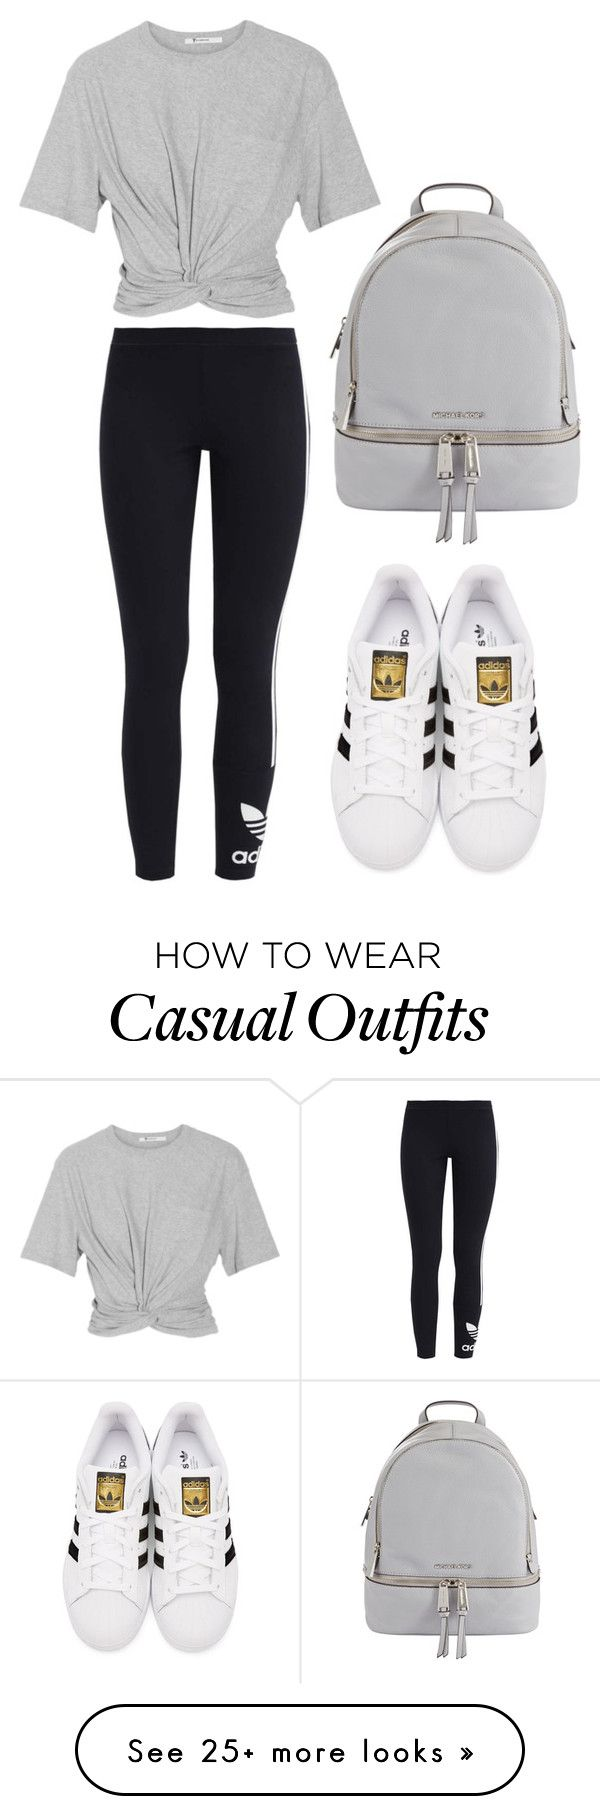 """Casual.1"" by taylah14 on Polyvore featuring adidas Originals, T By Alexander Wang and MICHAEL Michael Kors"